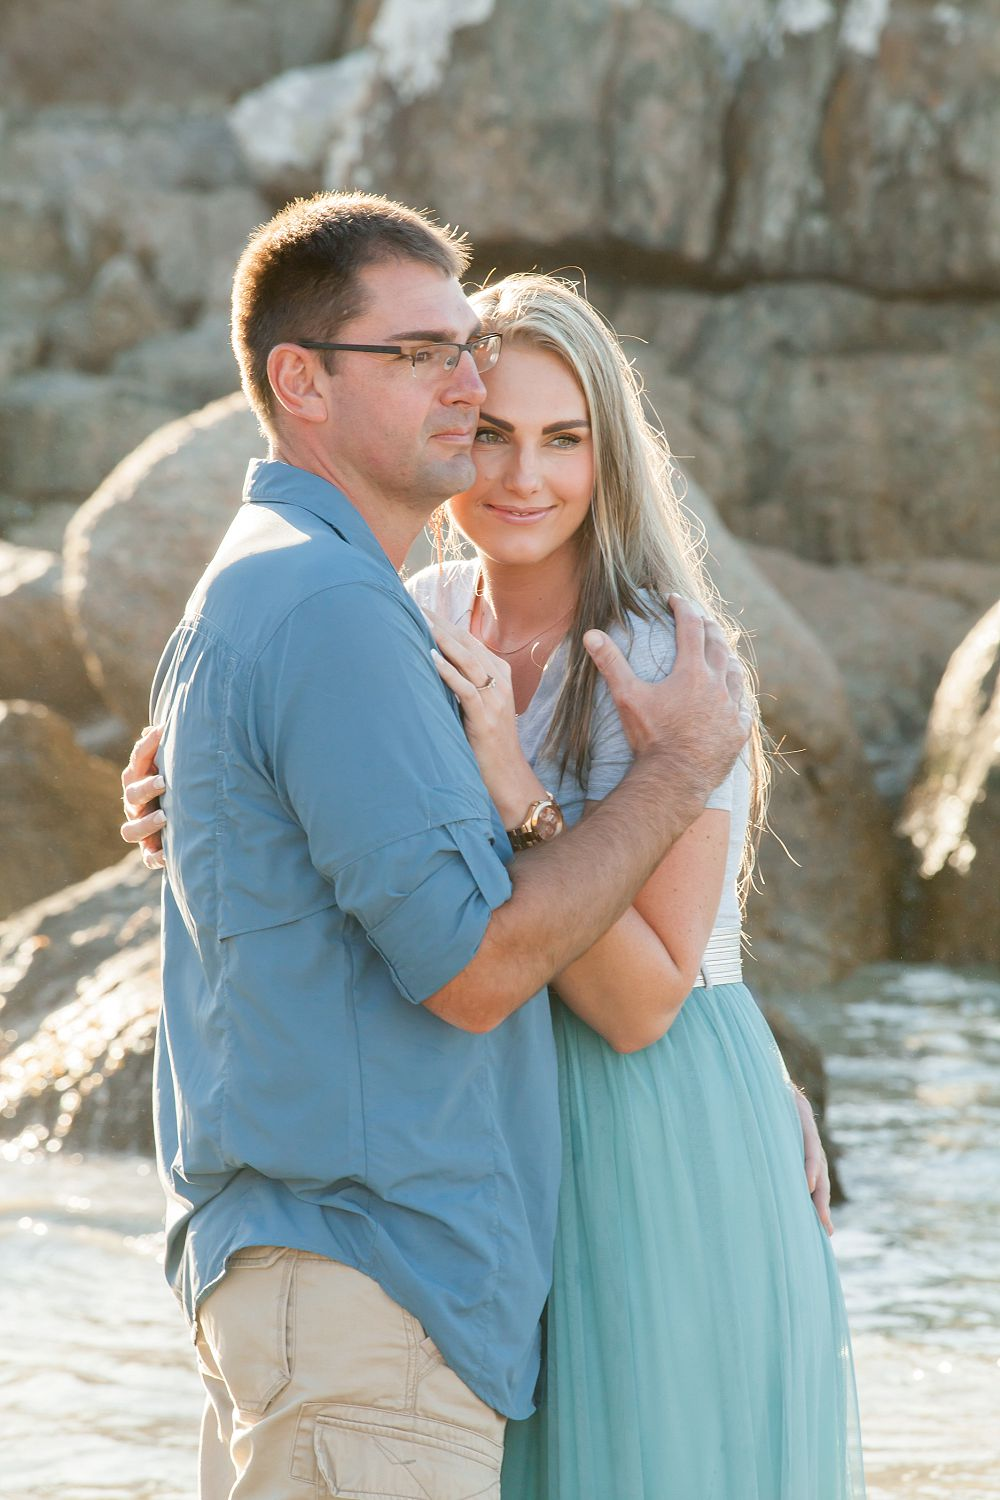 Paternoster Engagement Shoot Expressions Photography 010